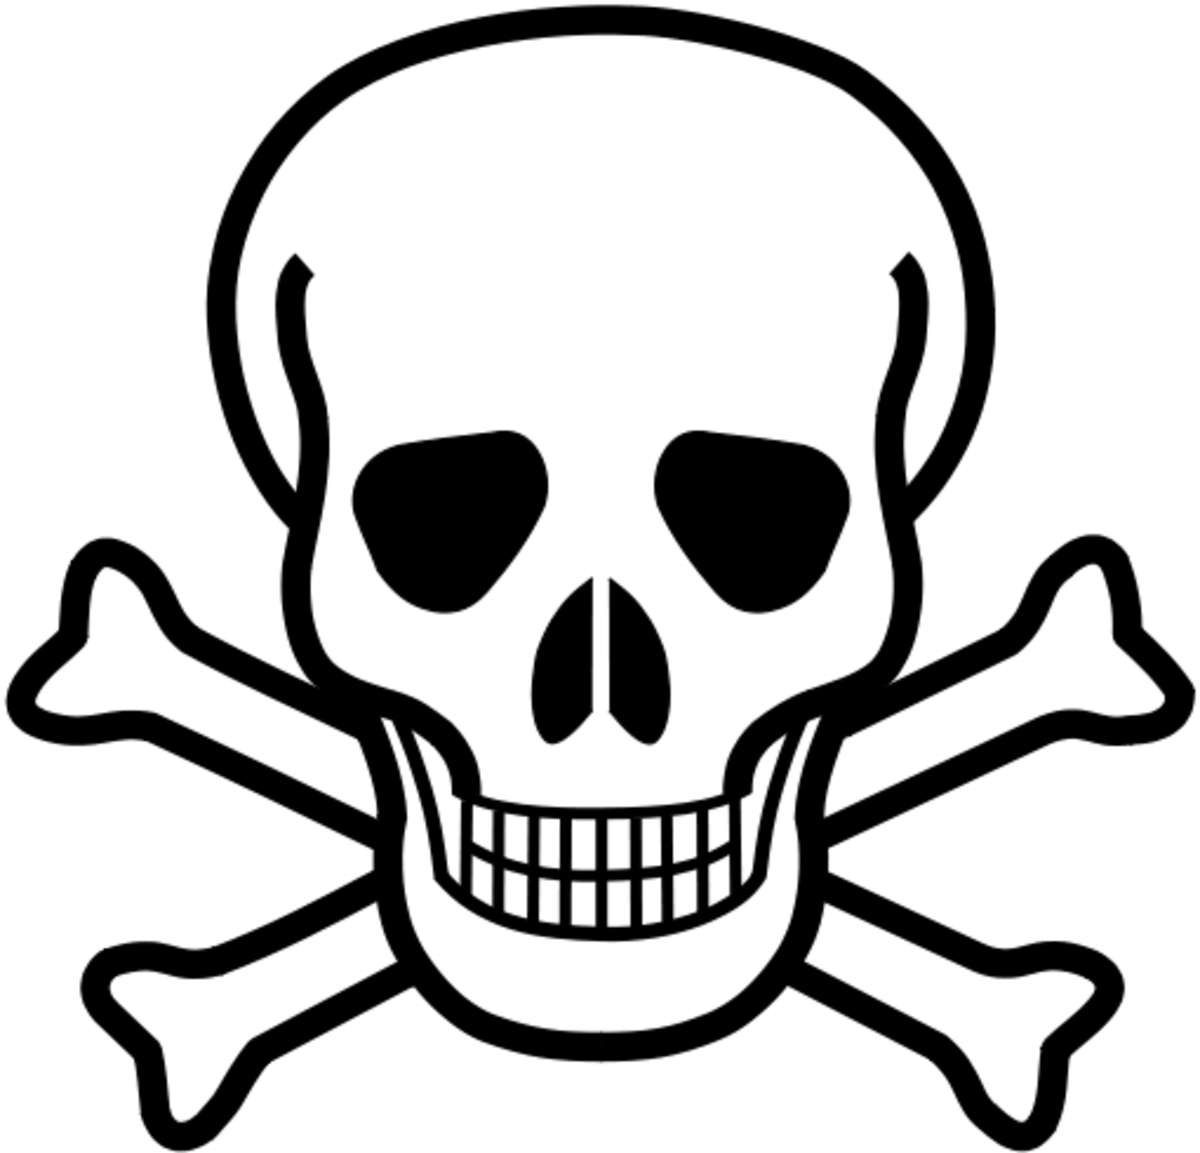 When you see the symbol of the skull and crossbones on a product label, it signifies that the chemicals in this product are potentially harmful.